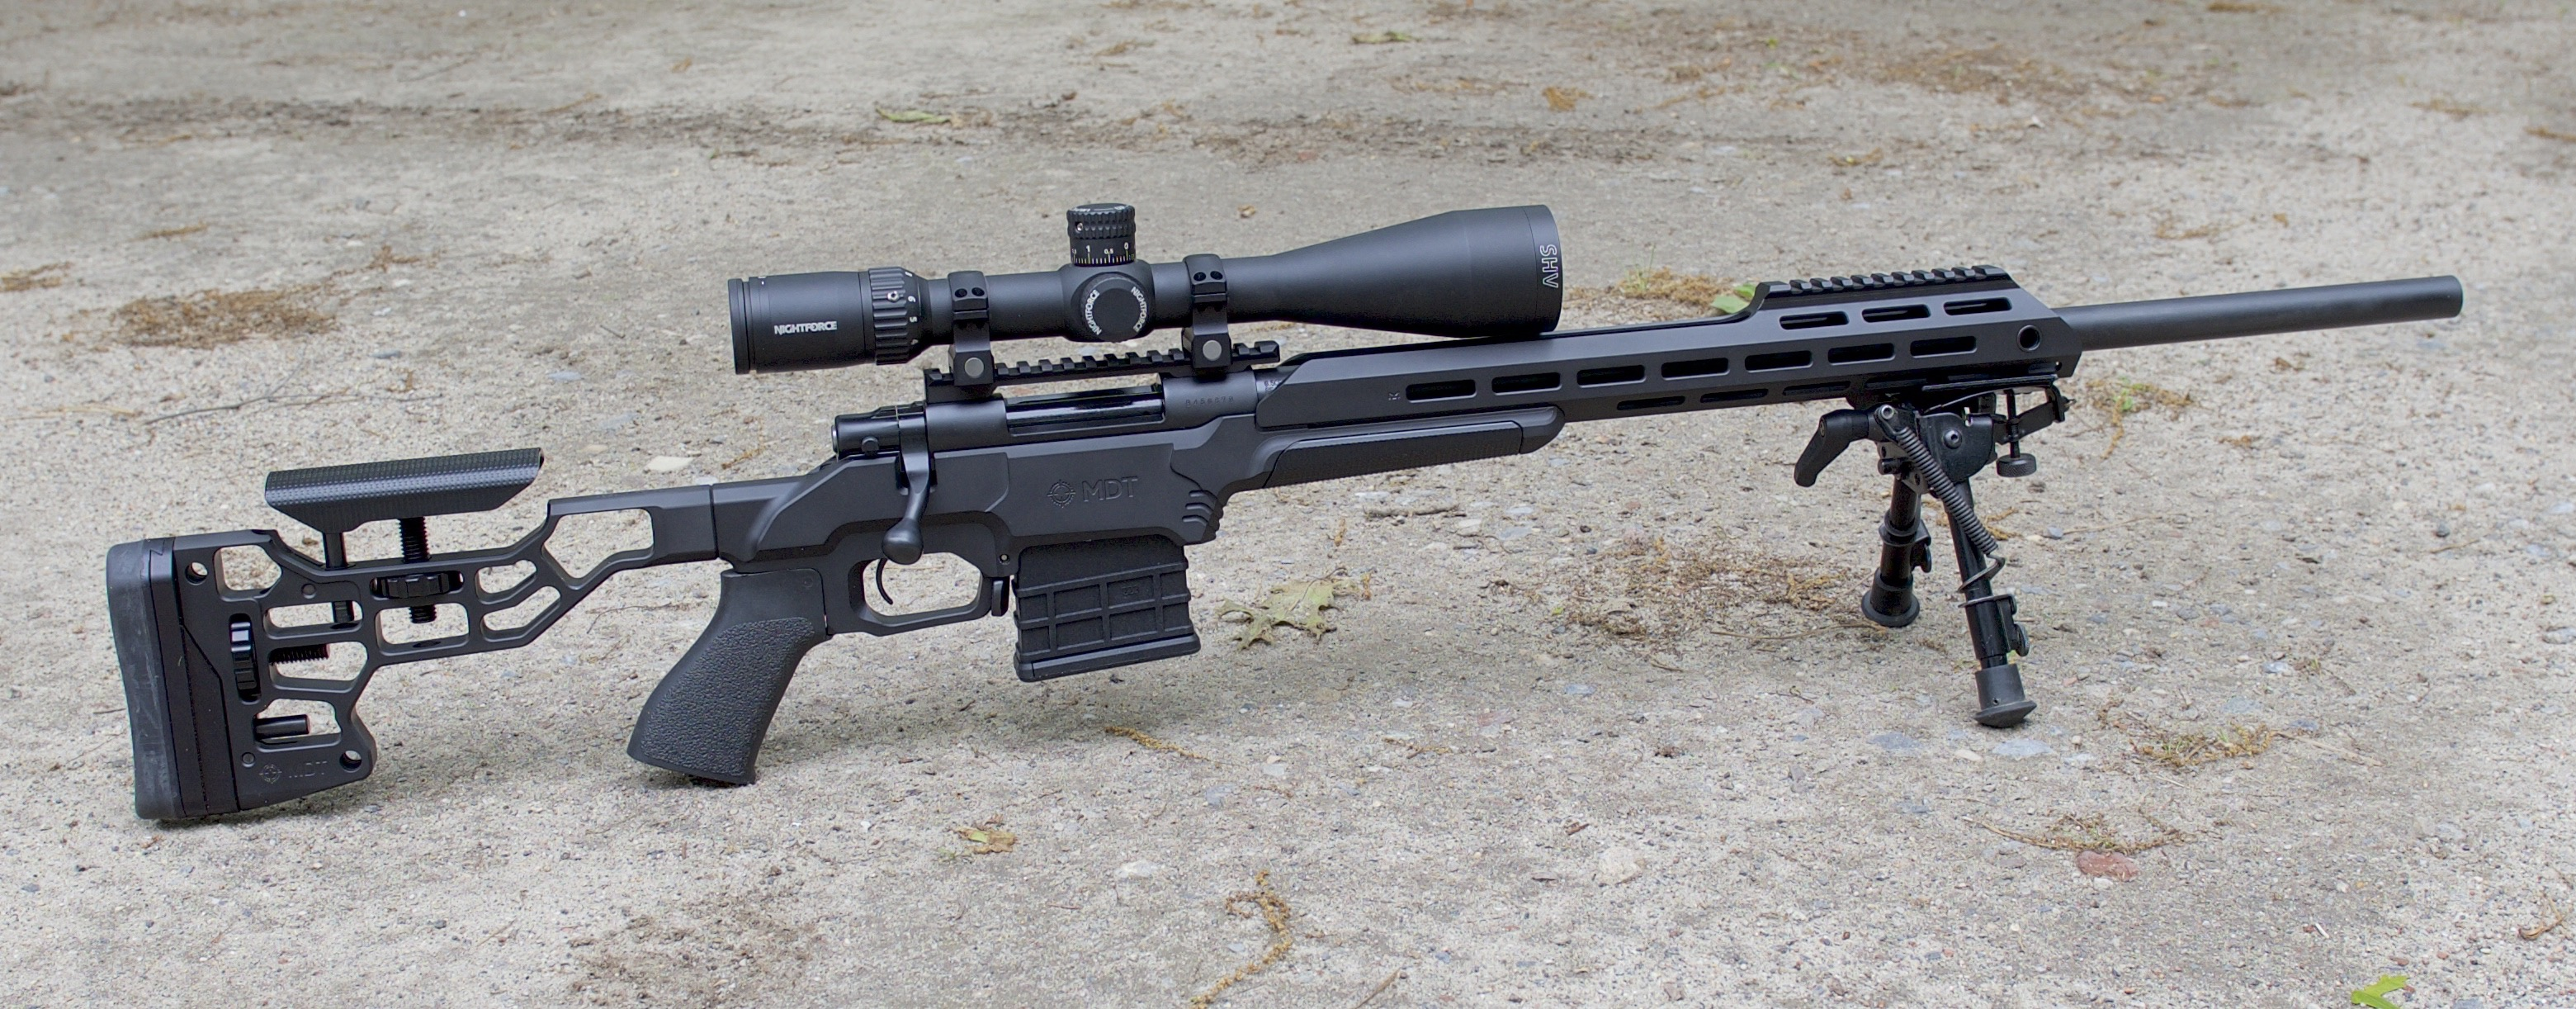 Howa 1500 with MDT ESS chassis system in 6 5 Creedmoor